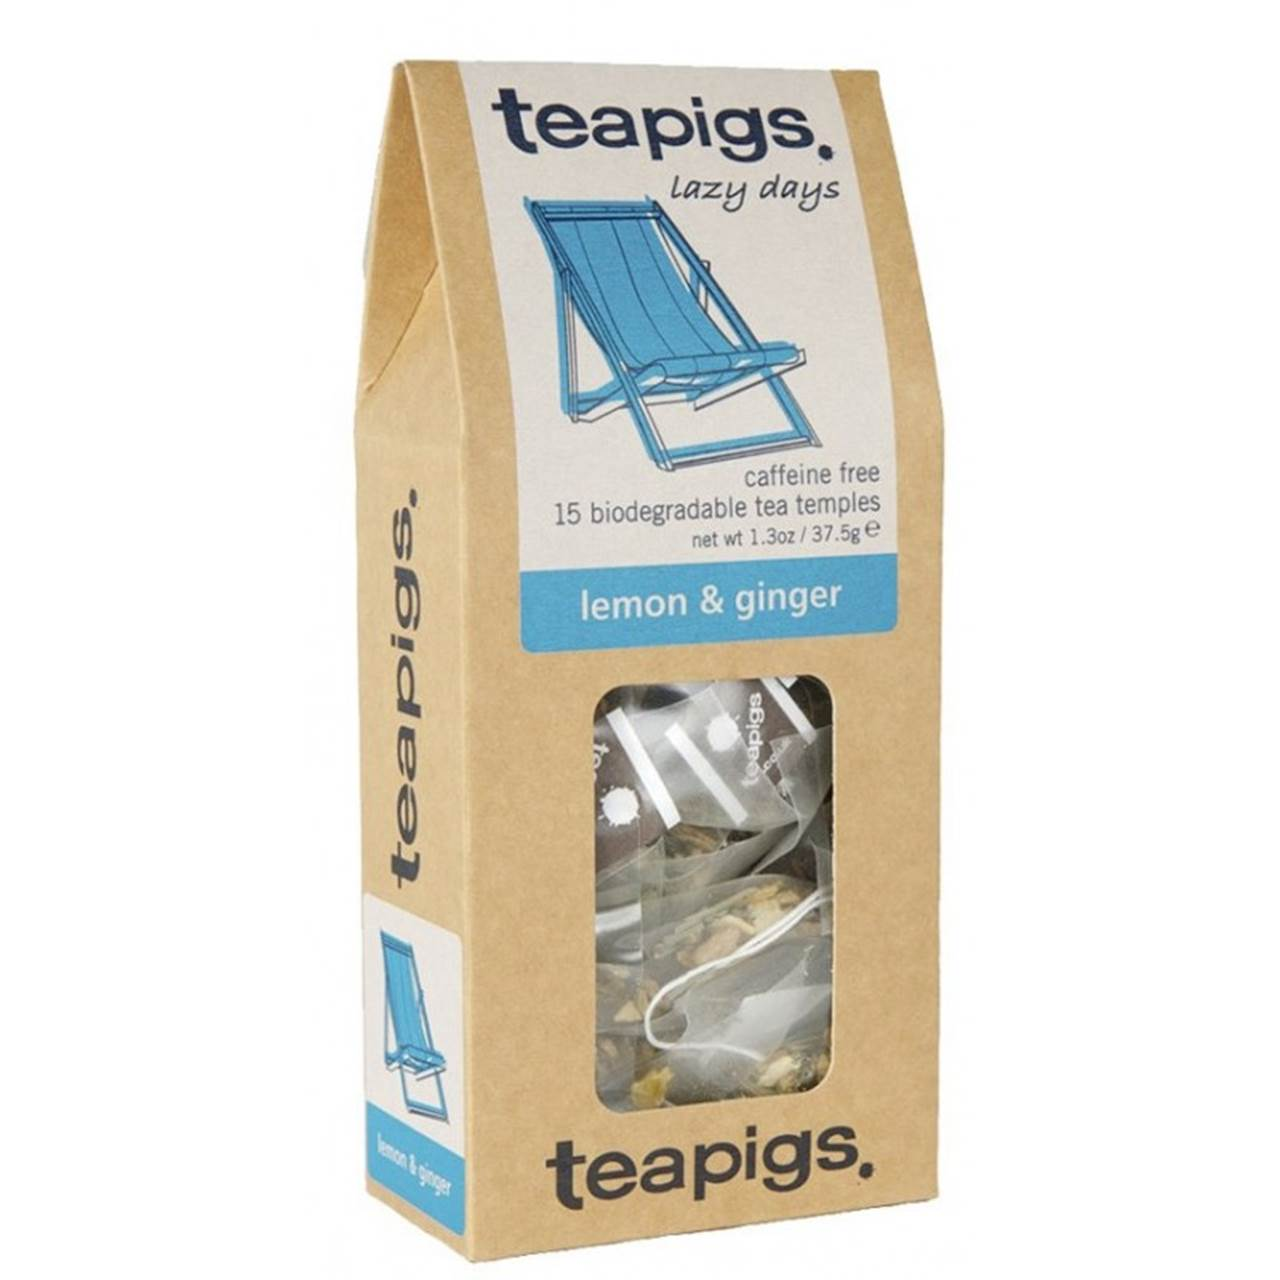 Lemon and ginger - Teapigs